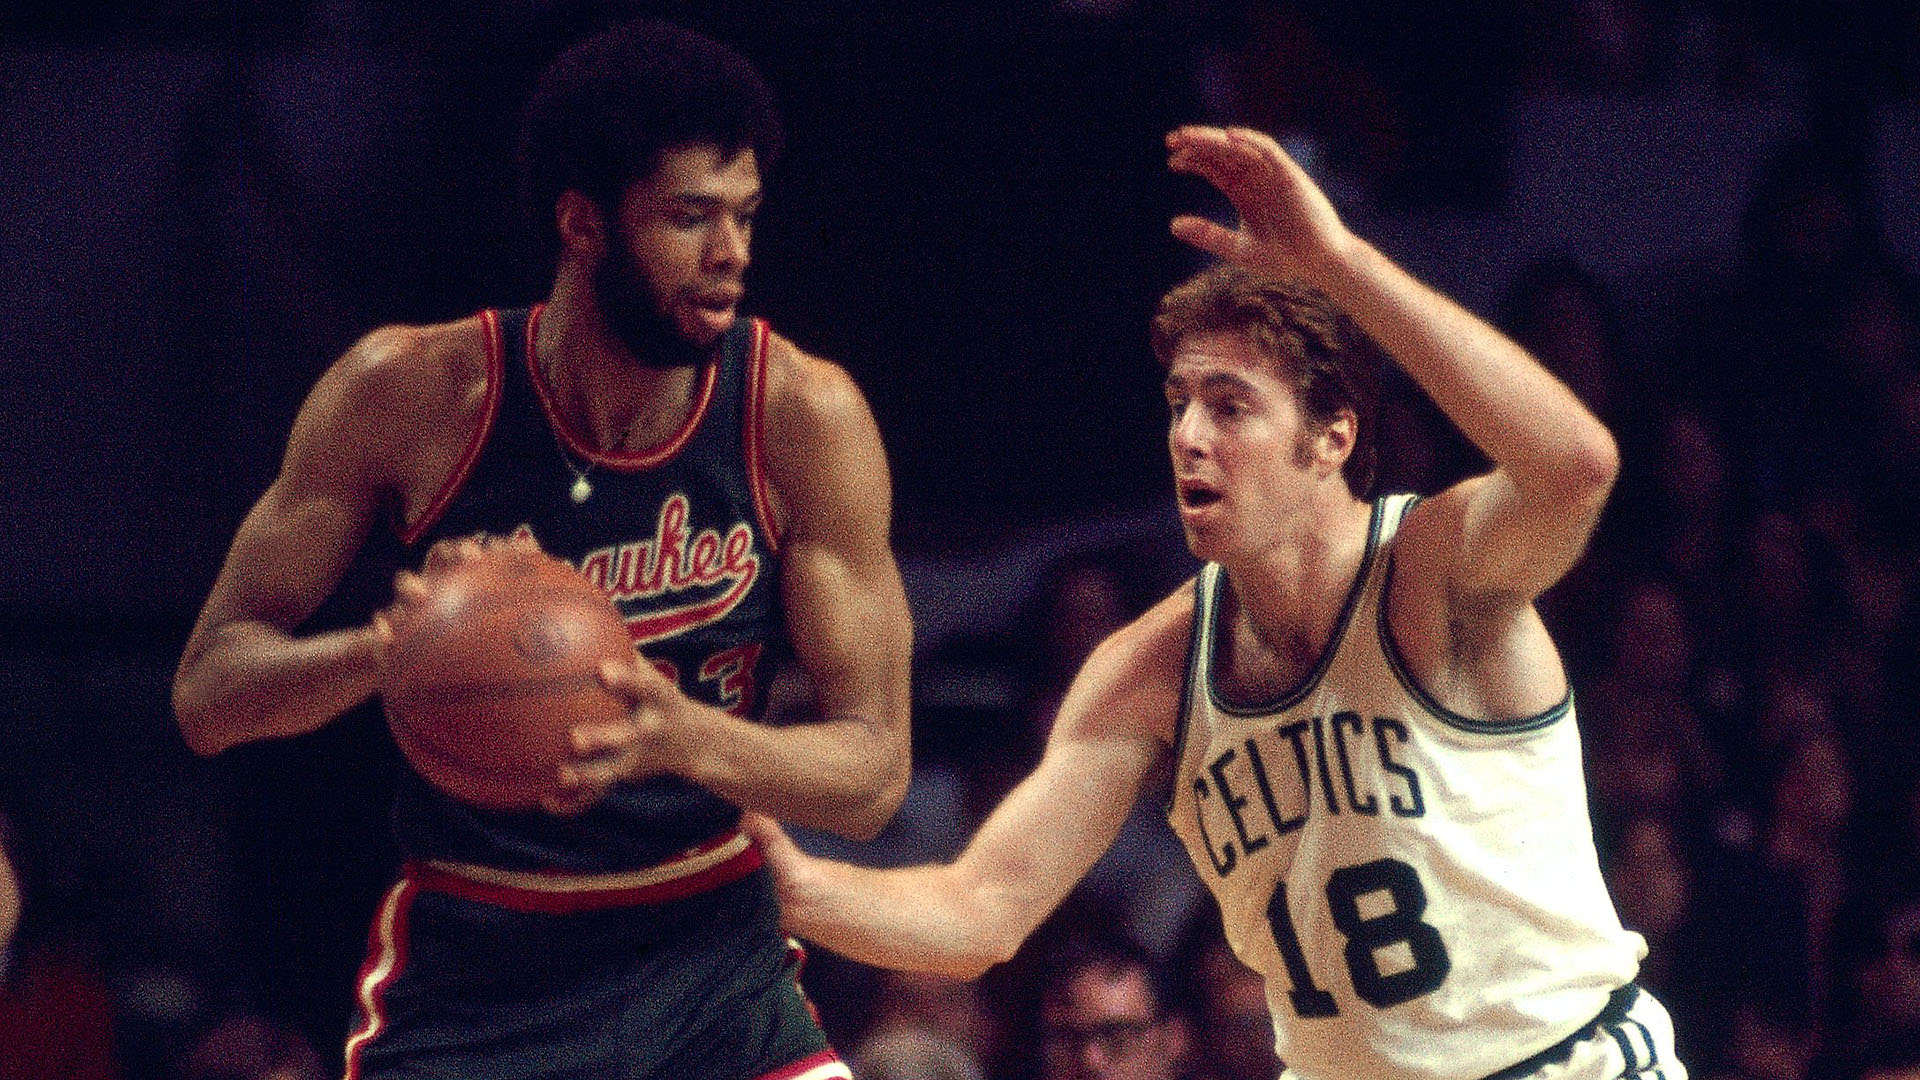 'Godfather II', Jerry West retires and more: It's been 47 years since the Bucks reached The Finals